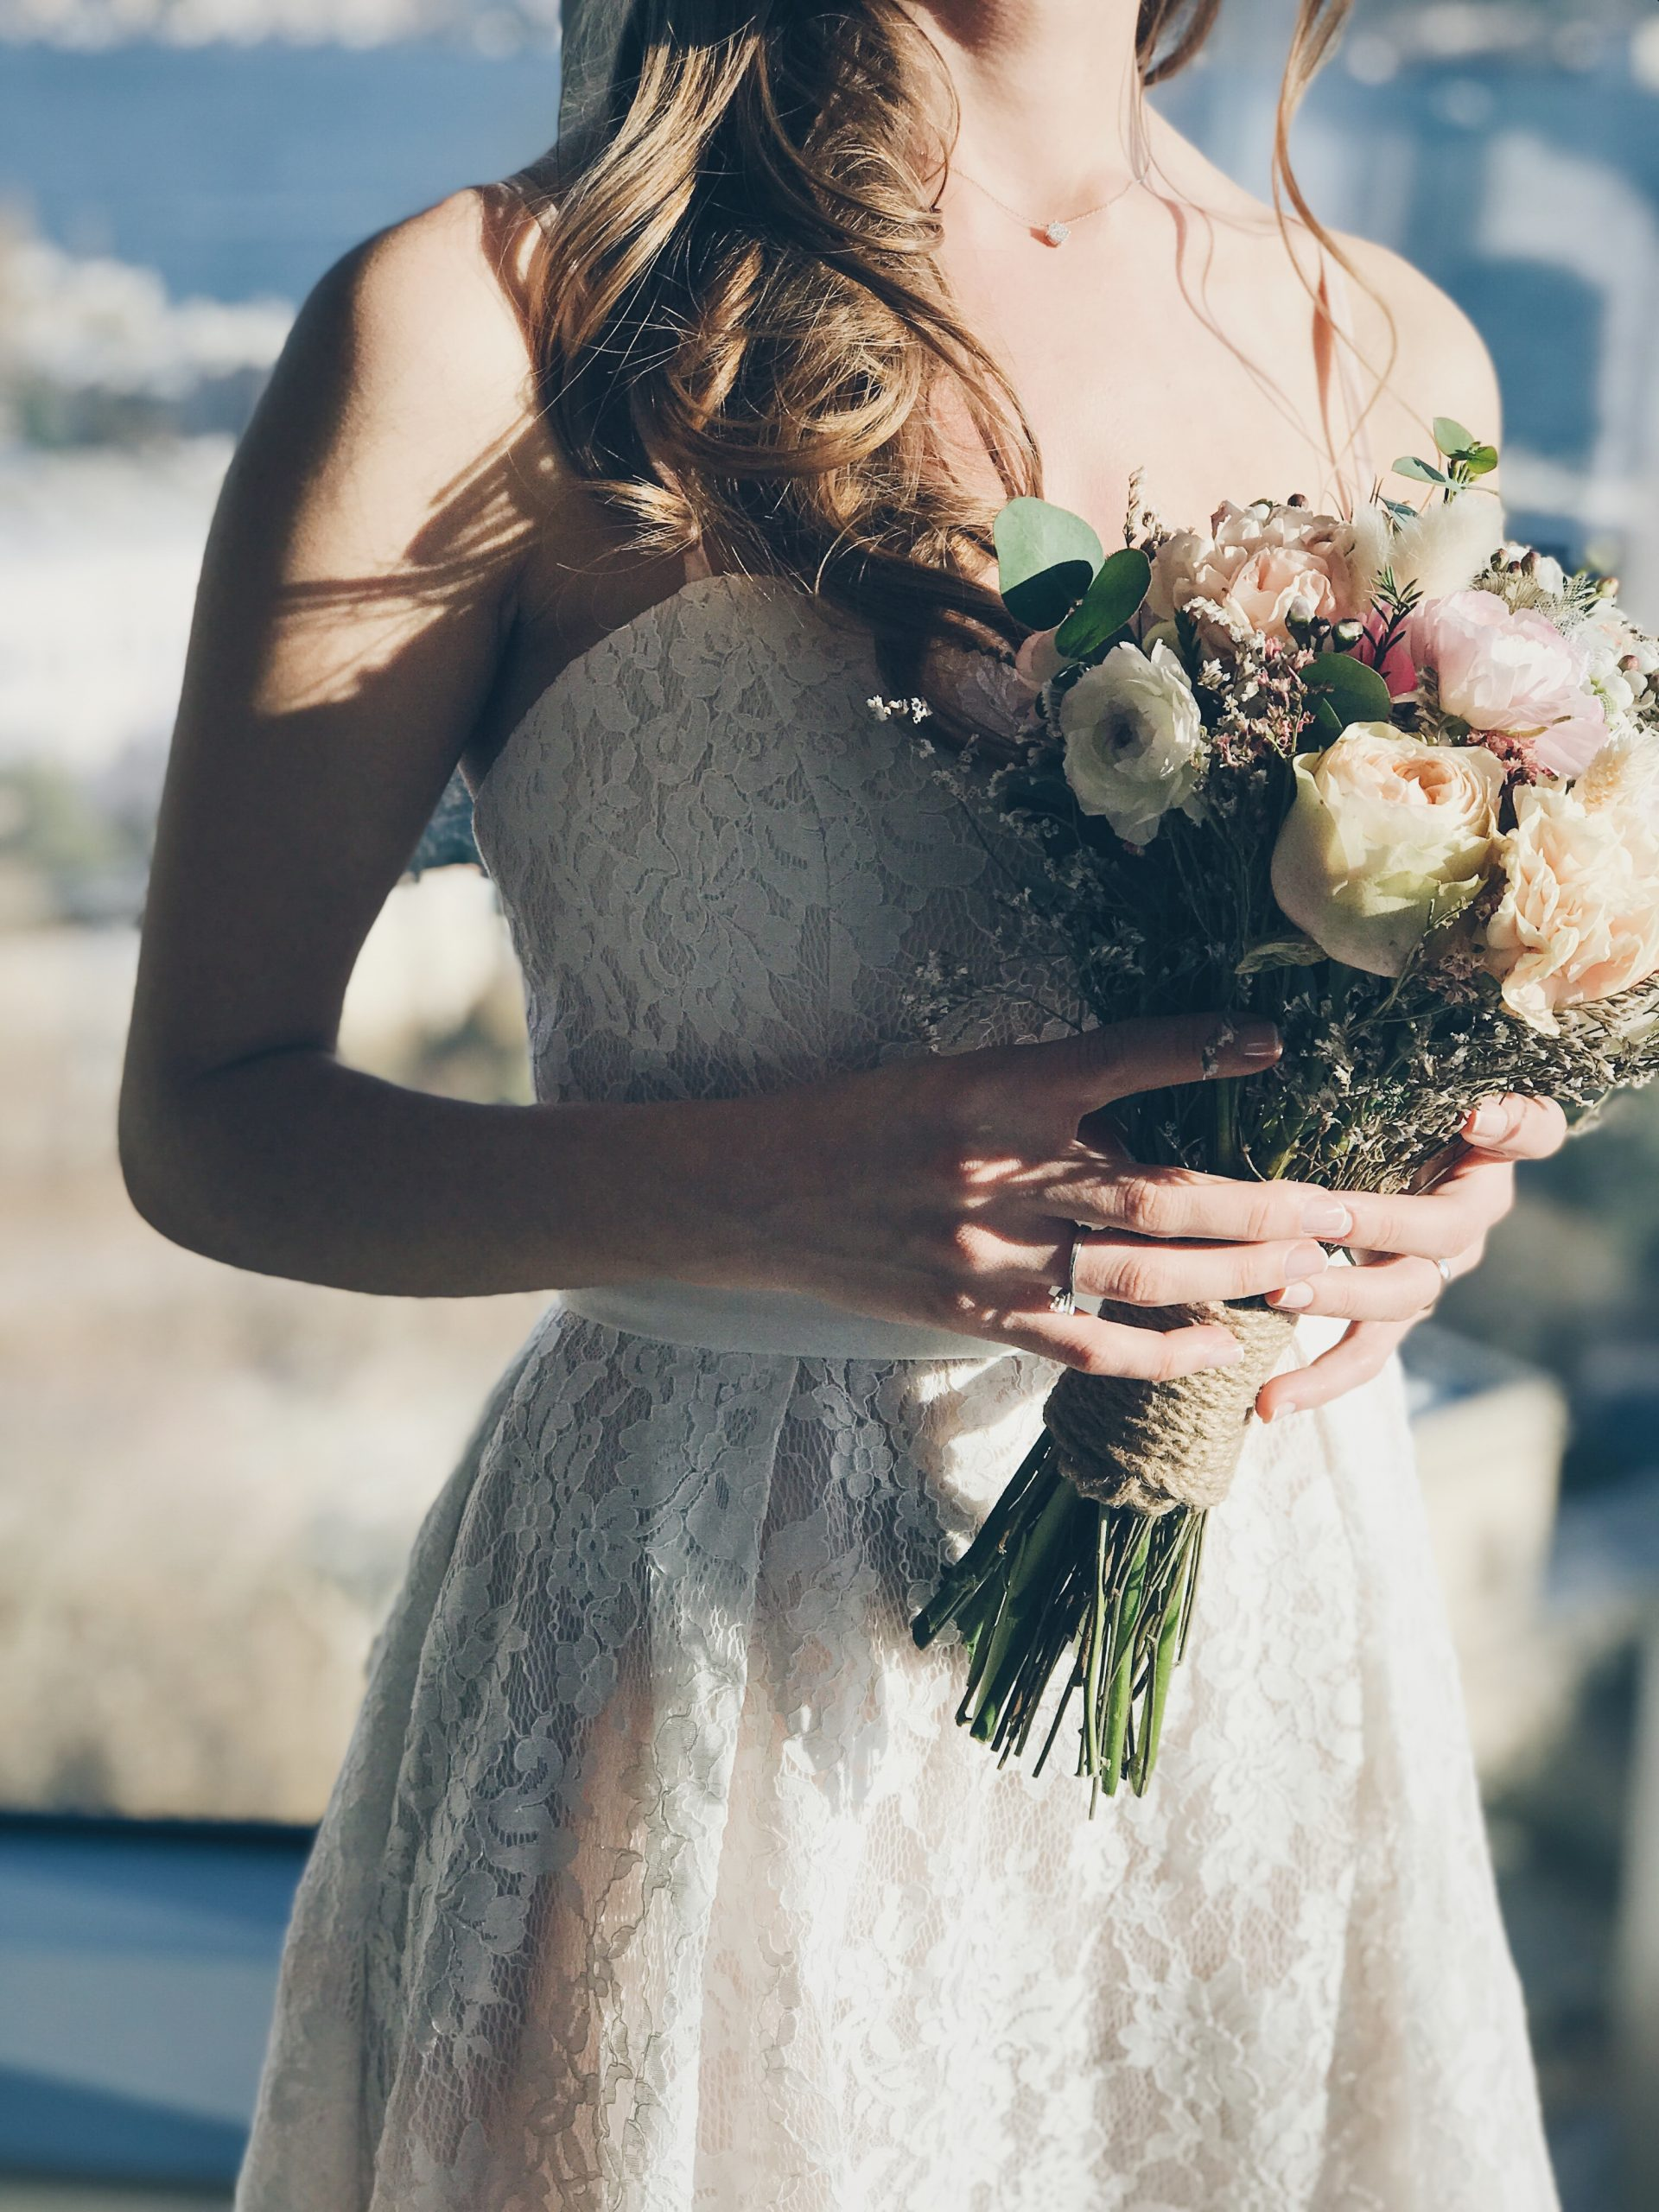 Is it worth it to have a videographer at your wedding?